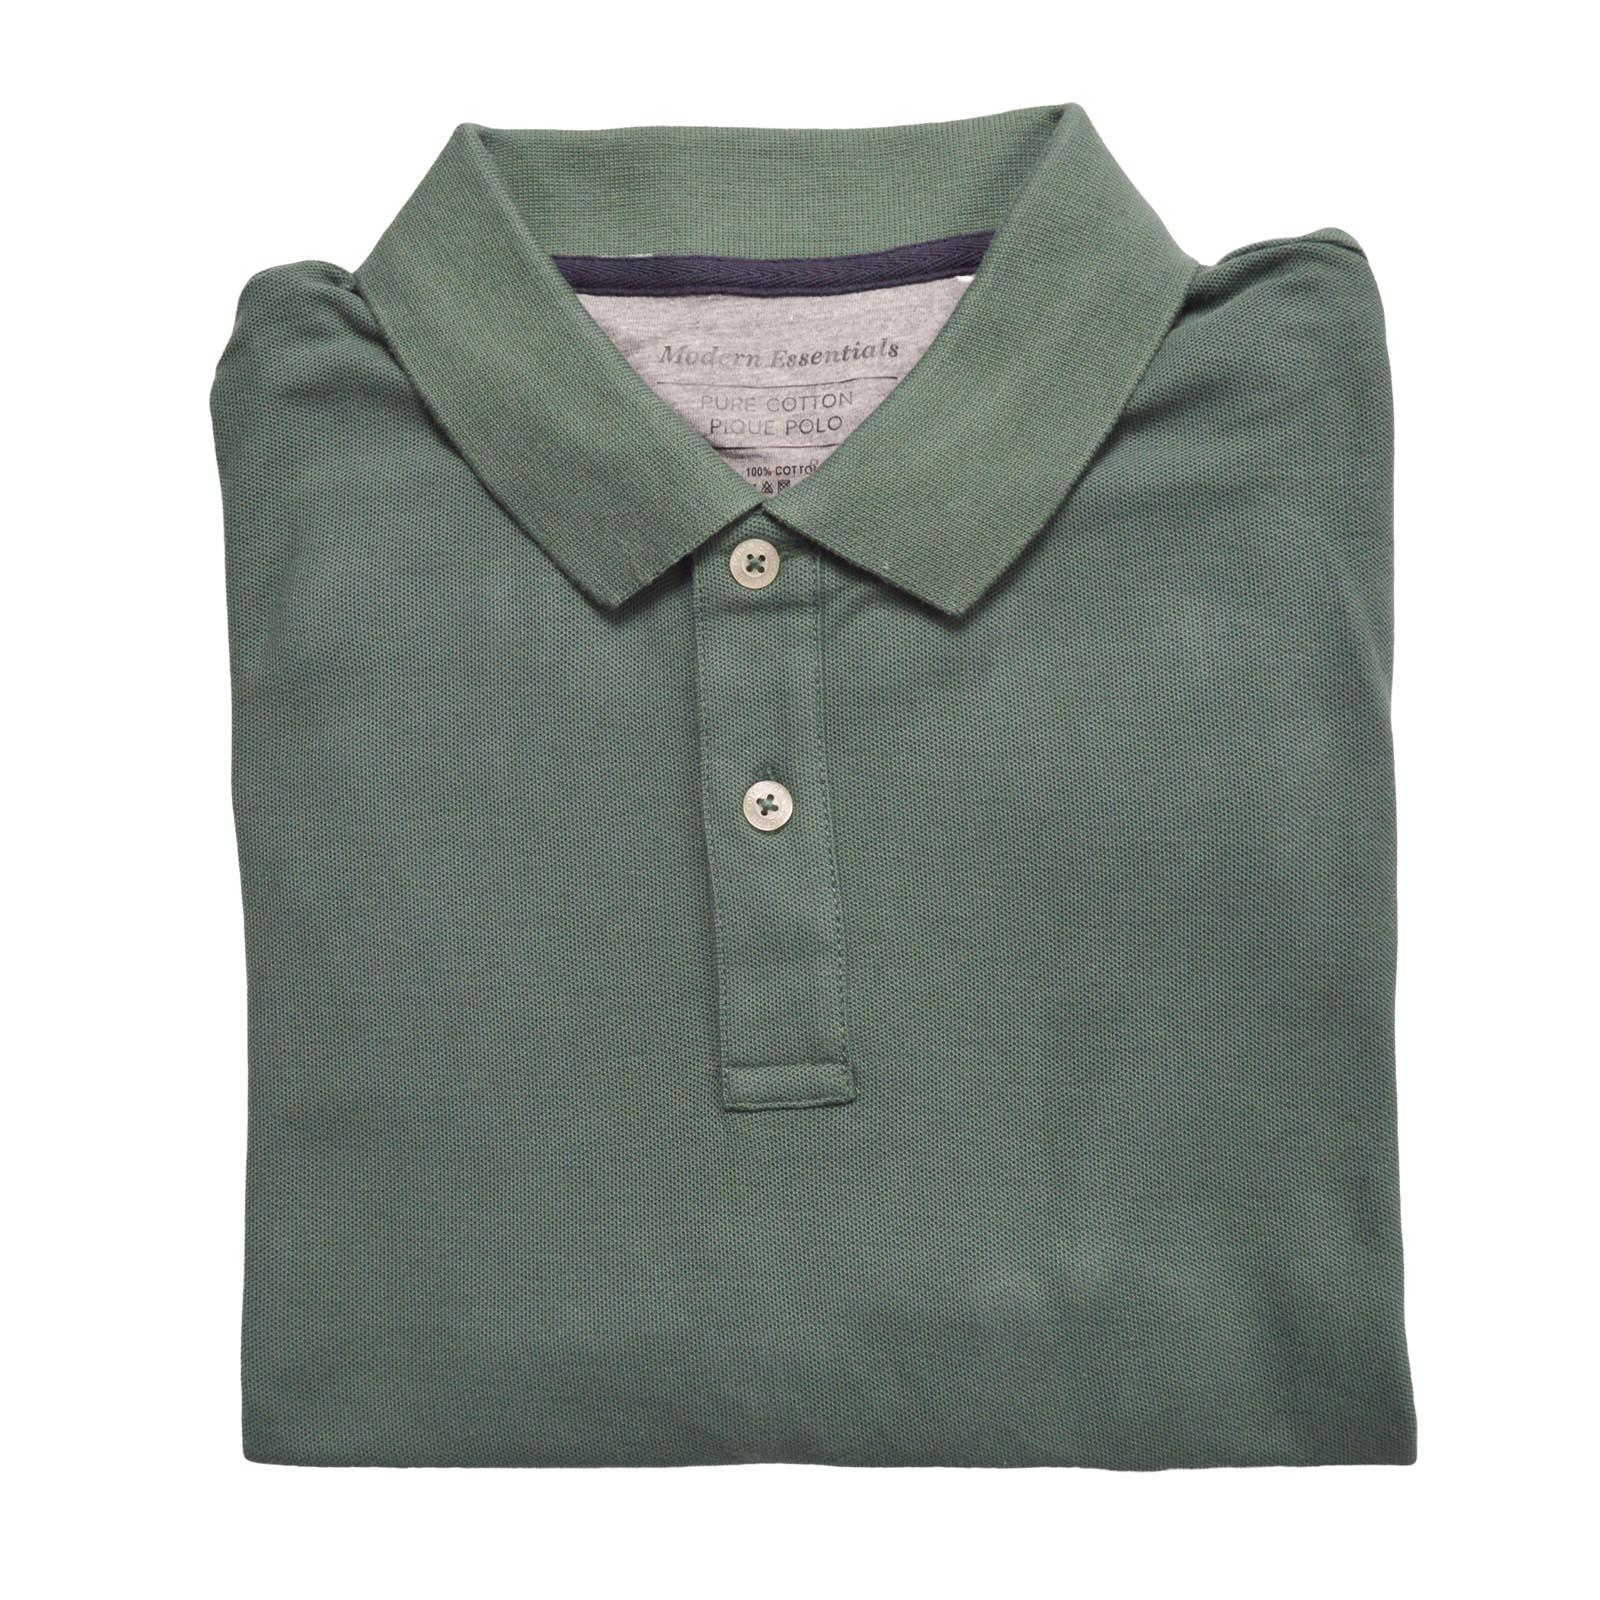 MARKS-amp-SPENCER-Mens-Classic-Cotton-Polo-Shirt-M-amp-S-All-Colours-and-Large-Sizes thumbnail 16